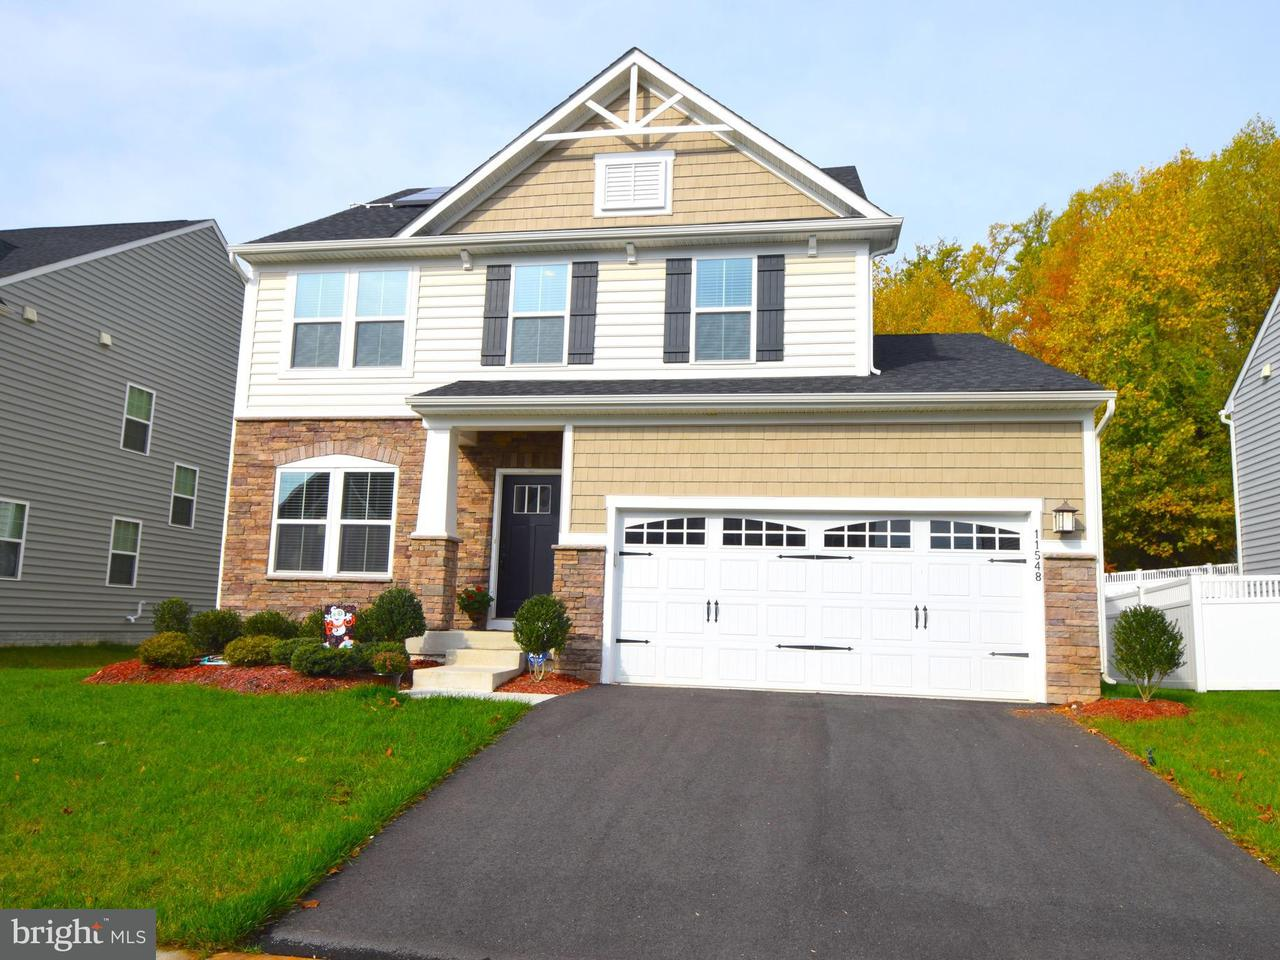 Maison unifamiliale pour l Vente à 11548 AUTUMN TERRACE Drive 11548 AUTUMN TERRACE Drive White Marsh, Maryland 21162 États-Unis